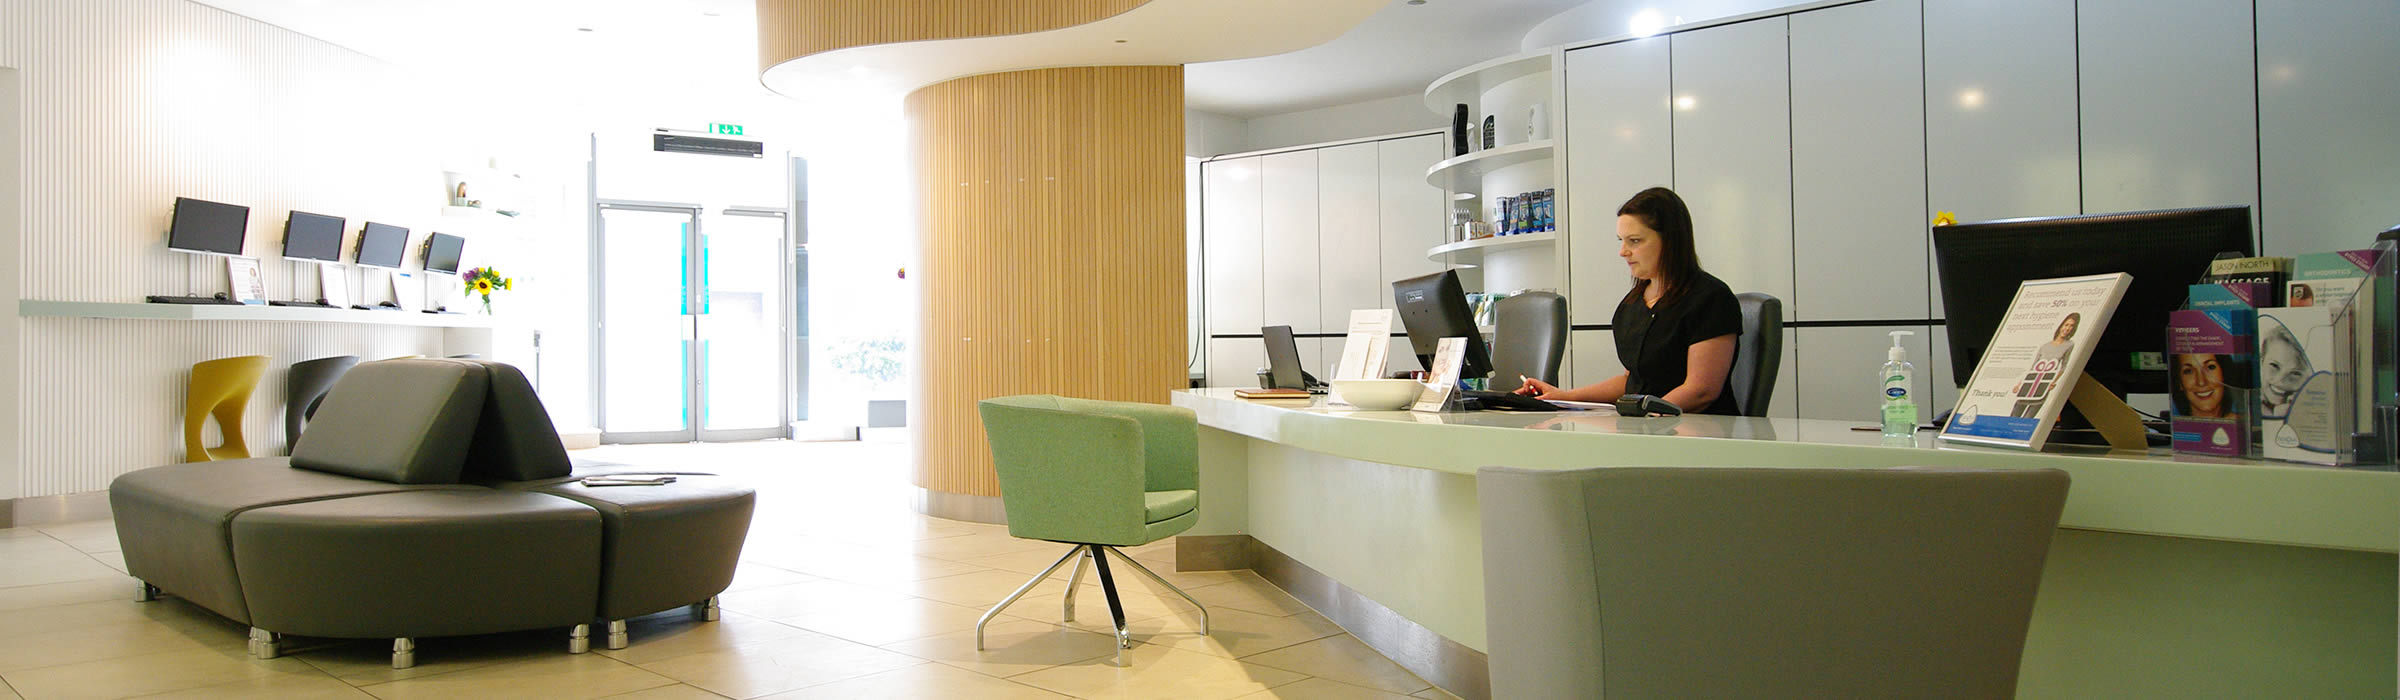 Reception area of Watford dentist Senova Dental Studios in Watford, Hertfordshire